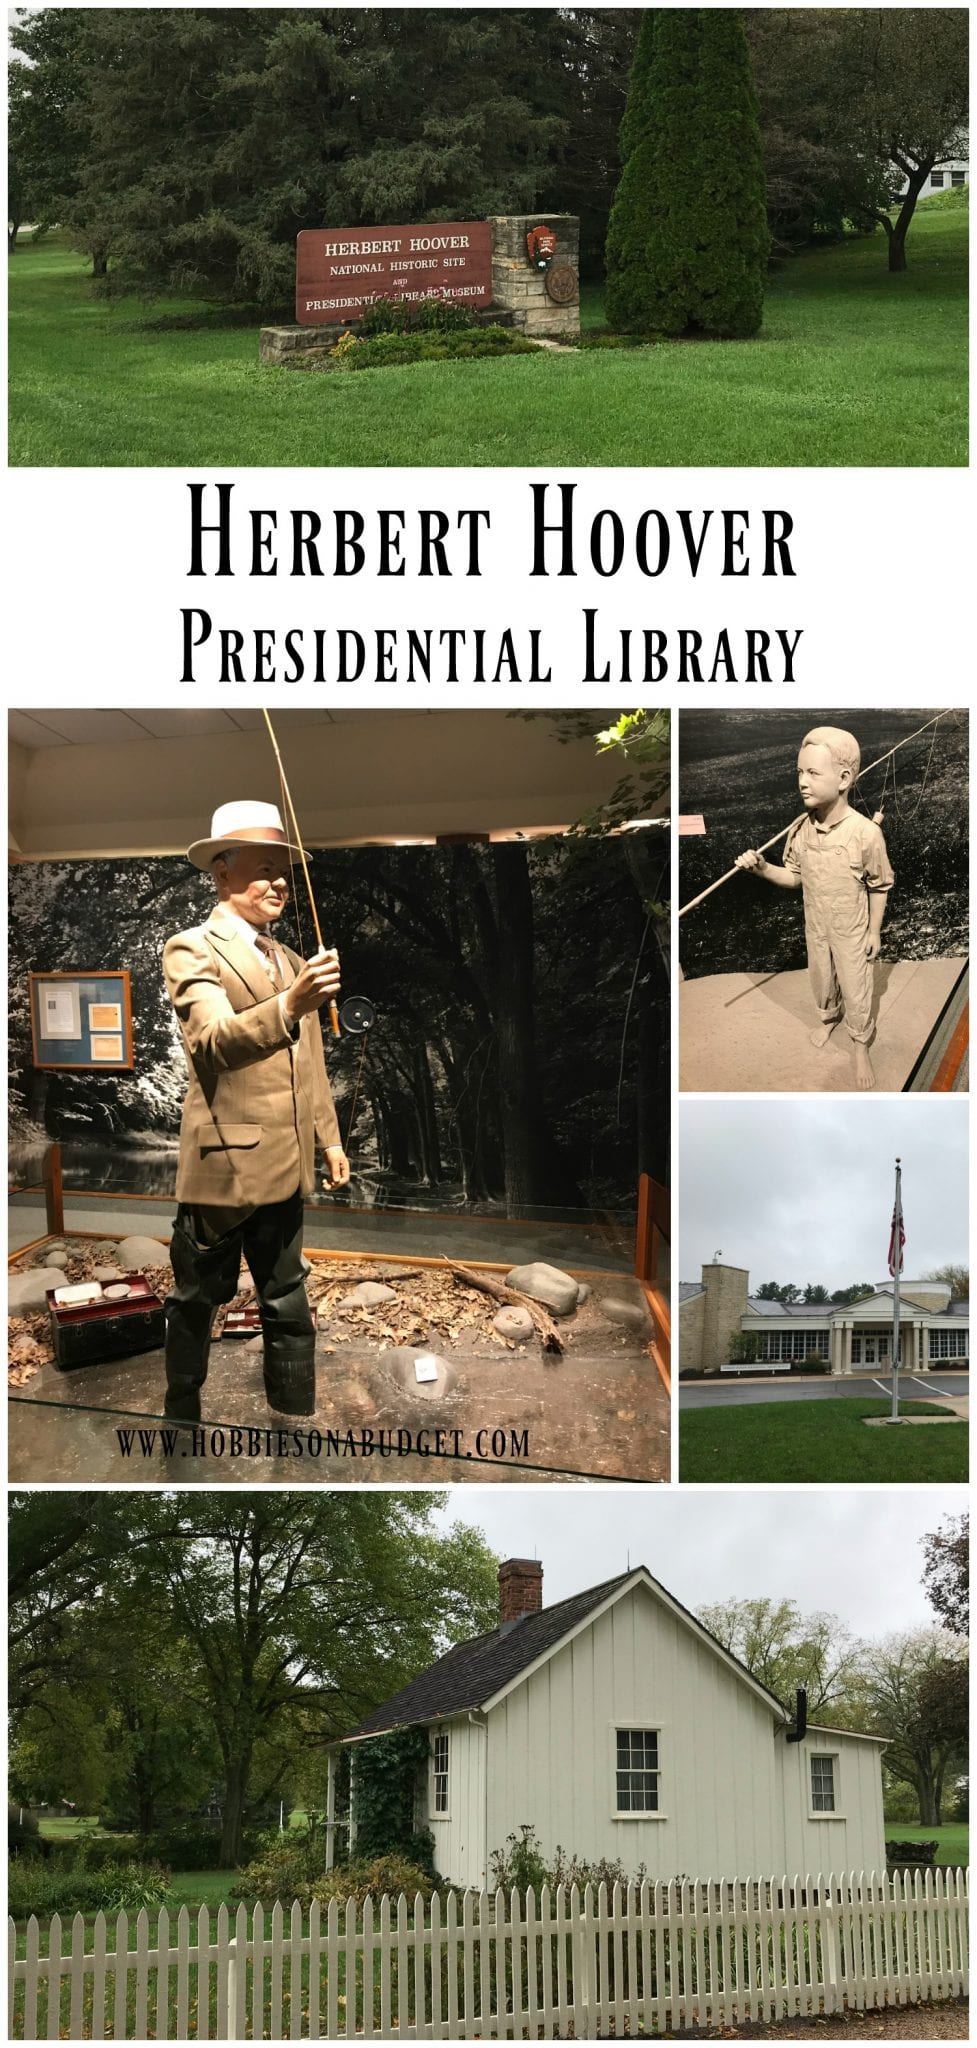 Herbert Hoover Presidential Library - West Branch, Iowa